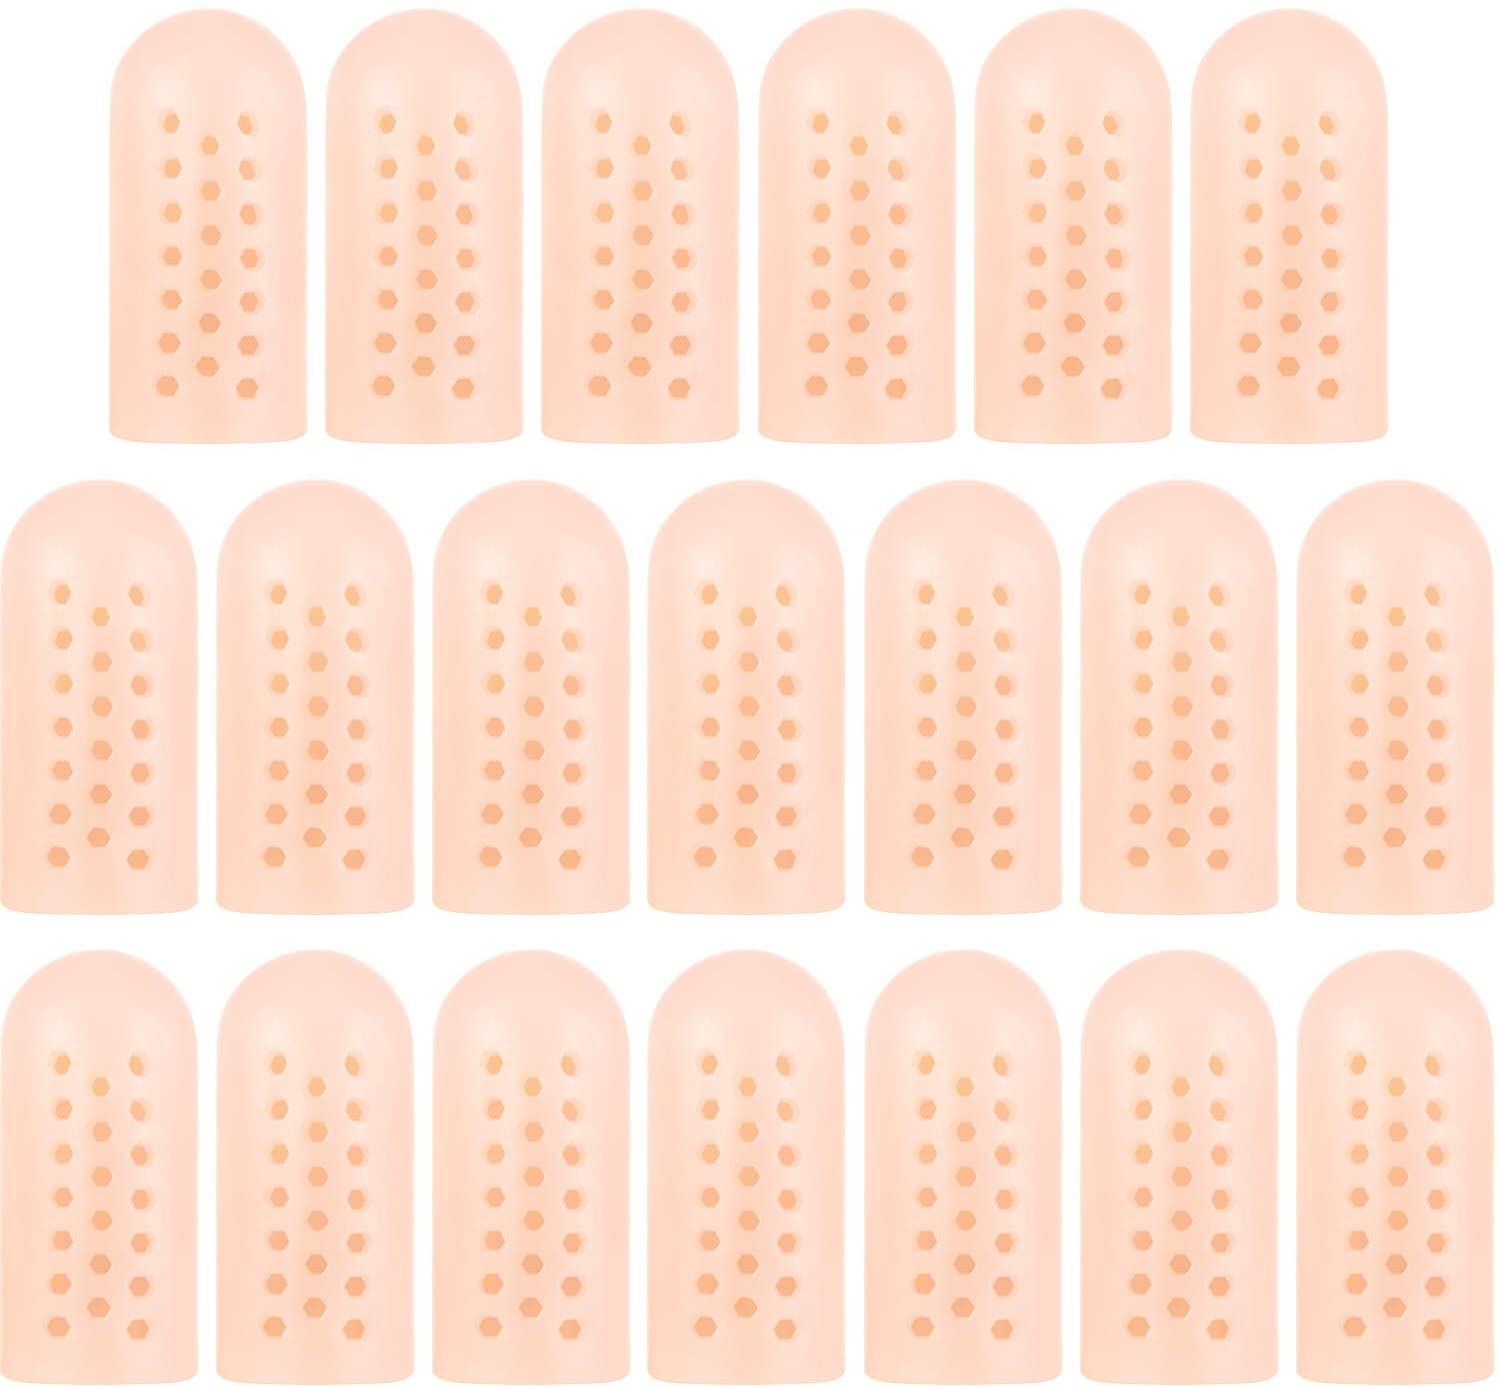 20 Pieces Gel Toe Cover Cap Gel Protector Breathable Toe Protector Toe Silicone Sleeve Crease Cushion Pads for Toenails Loss and Friction Pain Relief, Large Size